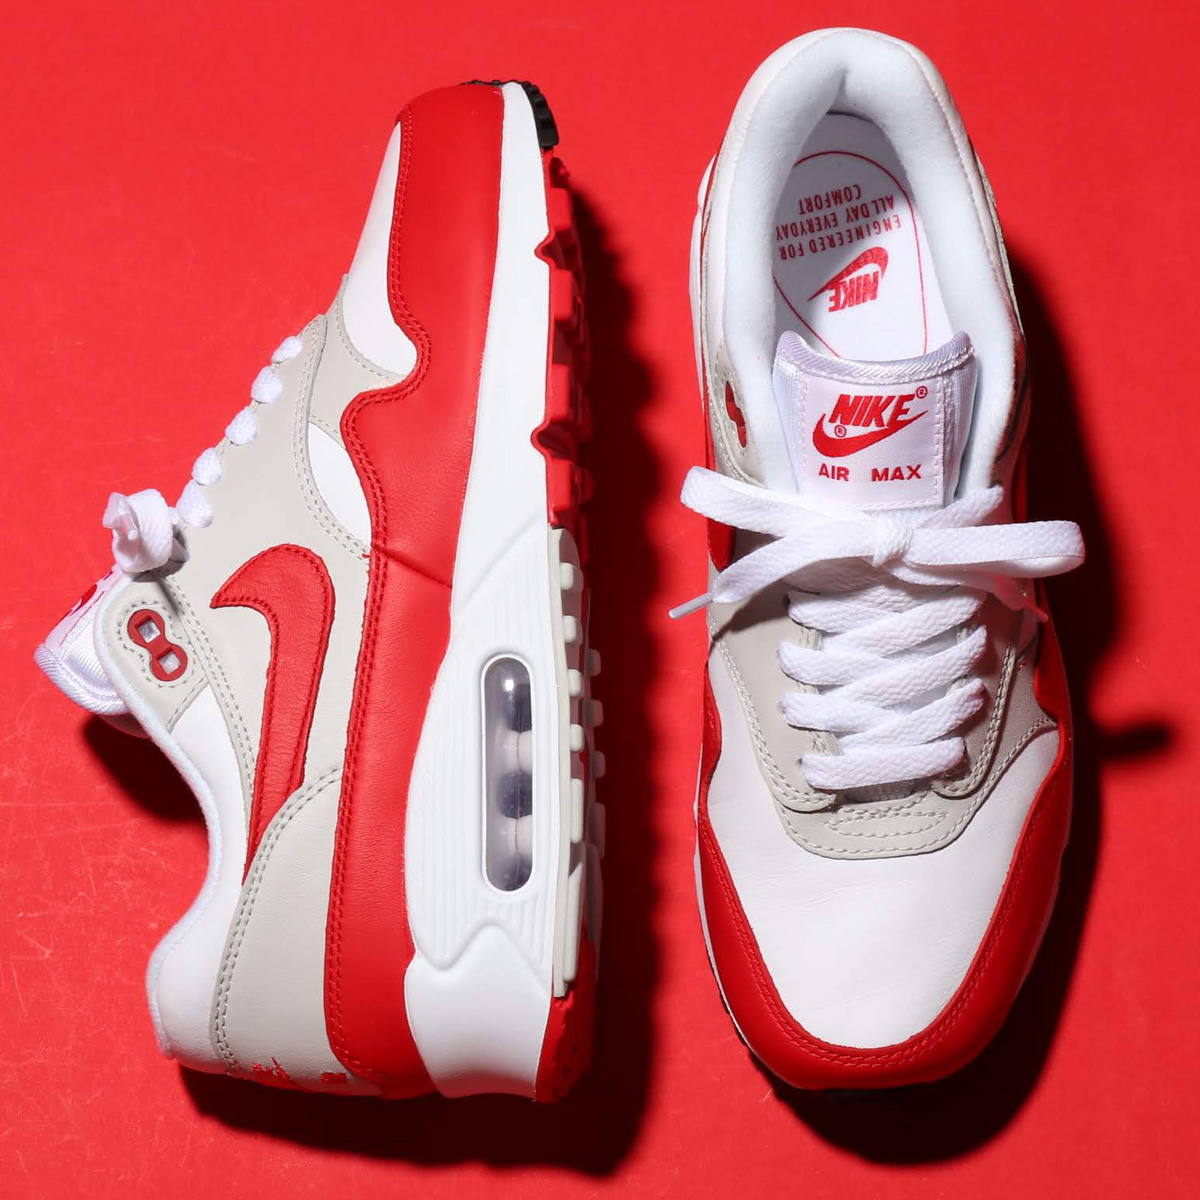 最新入荷 NIKE W AIR MAX 90/1(ナイキ 90 ウィメンズ W AIR エア マックス 90 1)WHITE/UNIVERSITY RED-NEUTRAL GREY-BLACK【メンズ レディース スニーカー】18FA-I, ふとんの青木:3fe724fb --- supercanaltv.zonalivresh.dominiotemporario.com